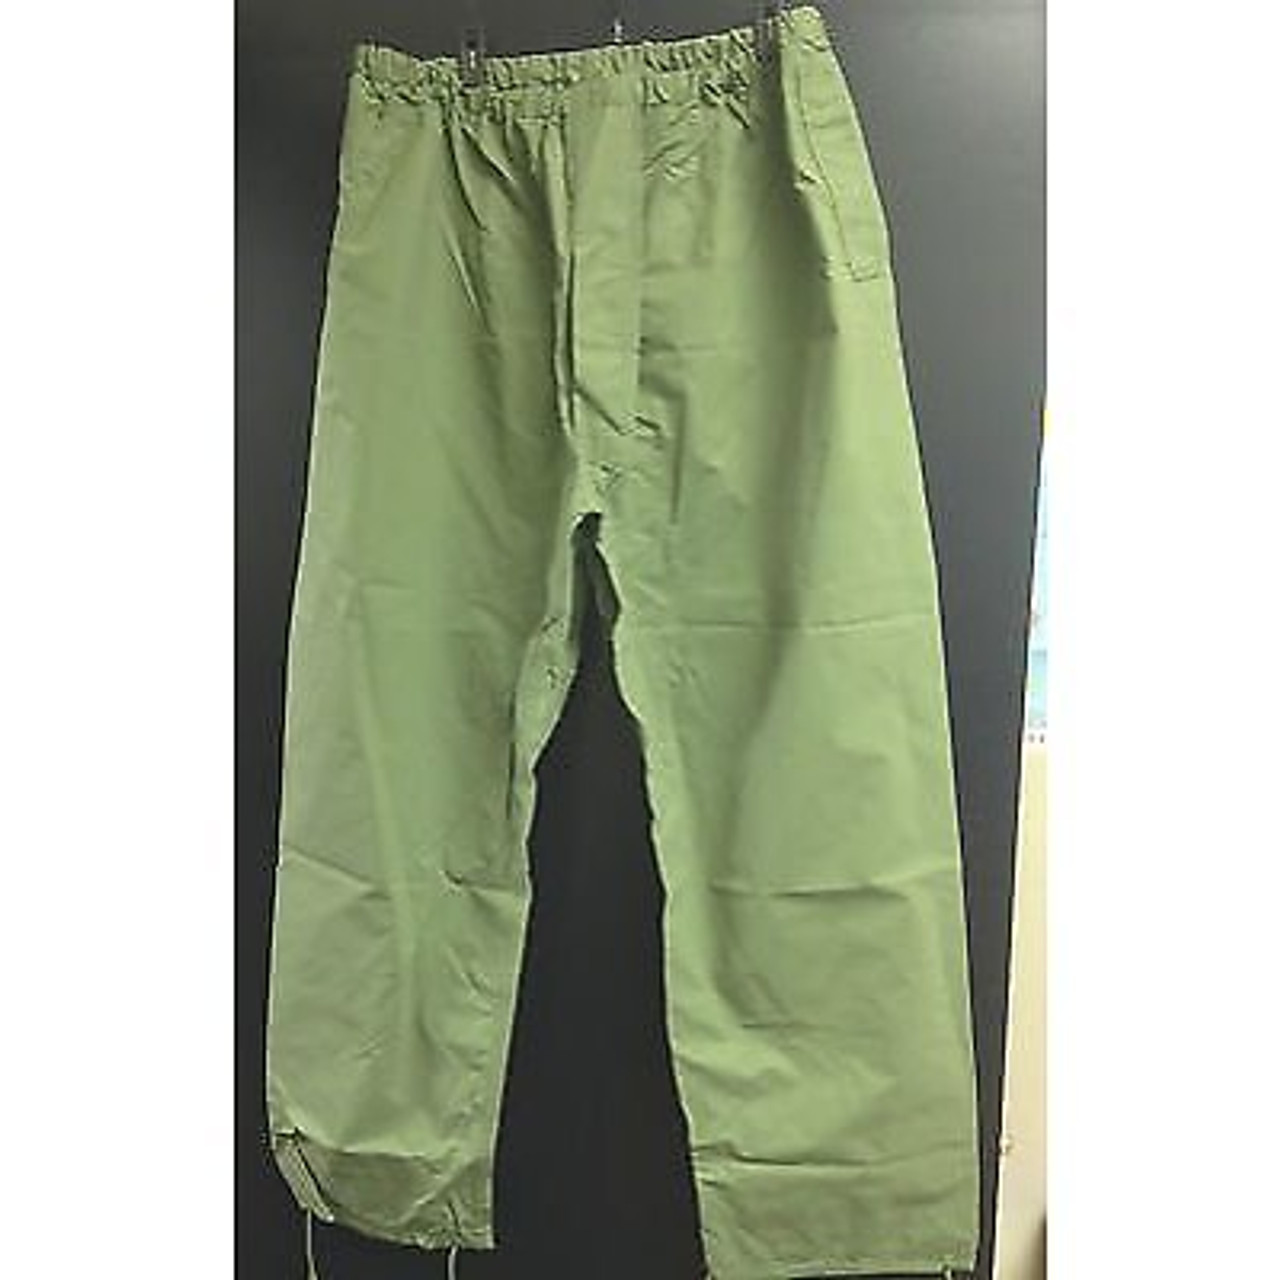 New Unissued Canadian Forces Rain Trousers